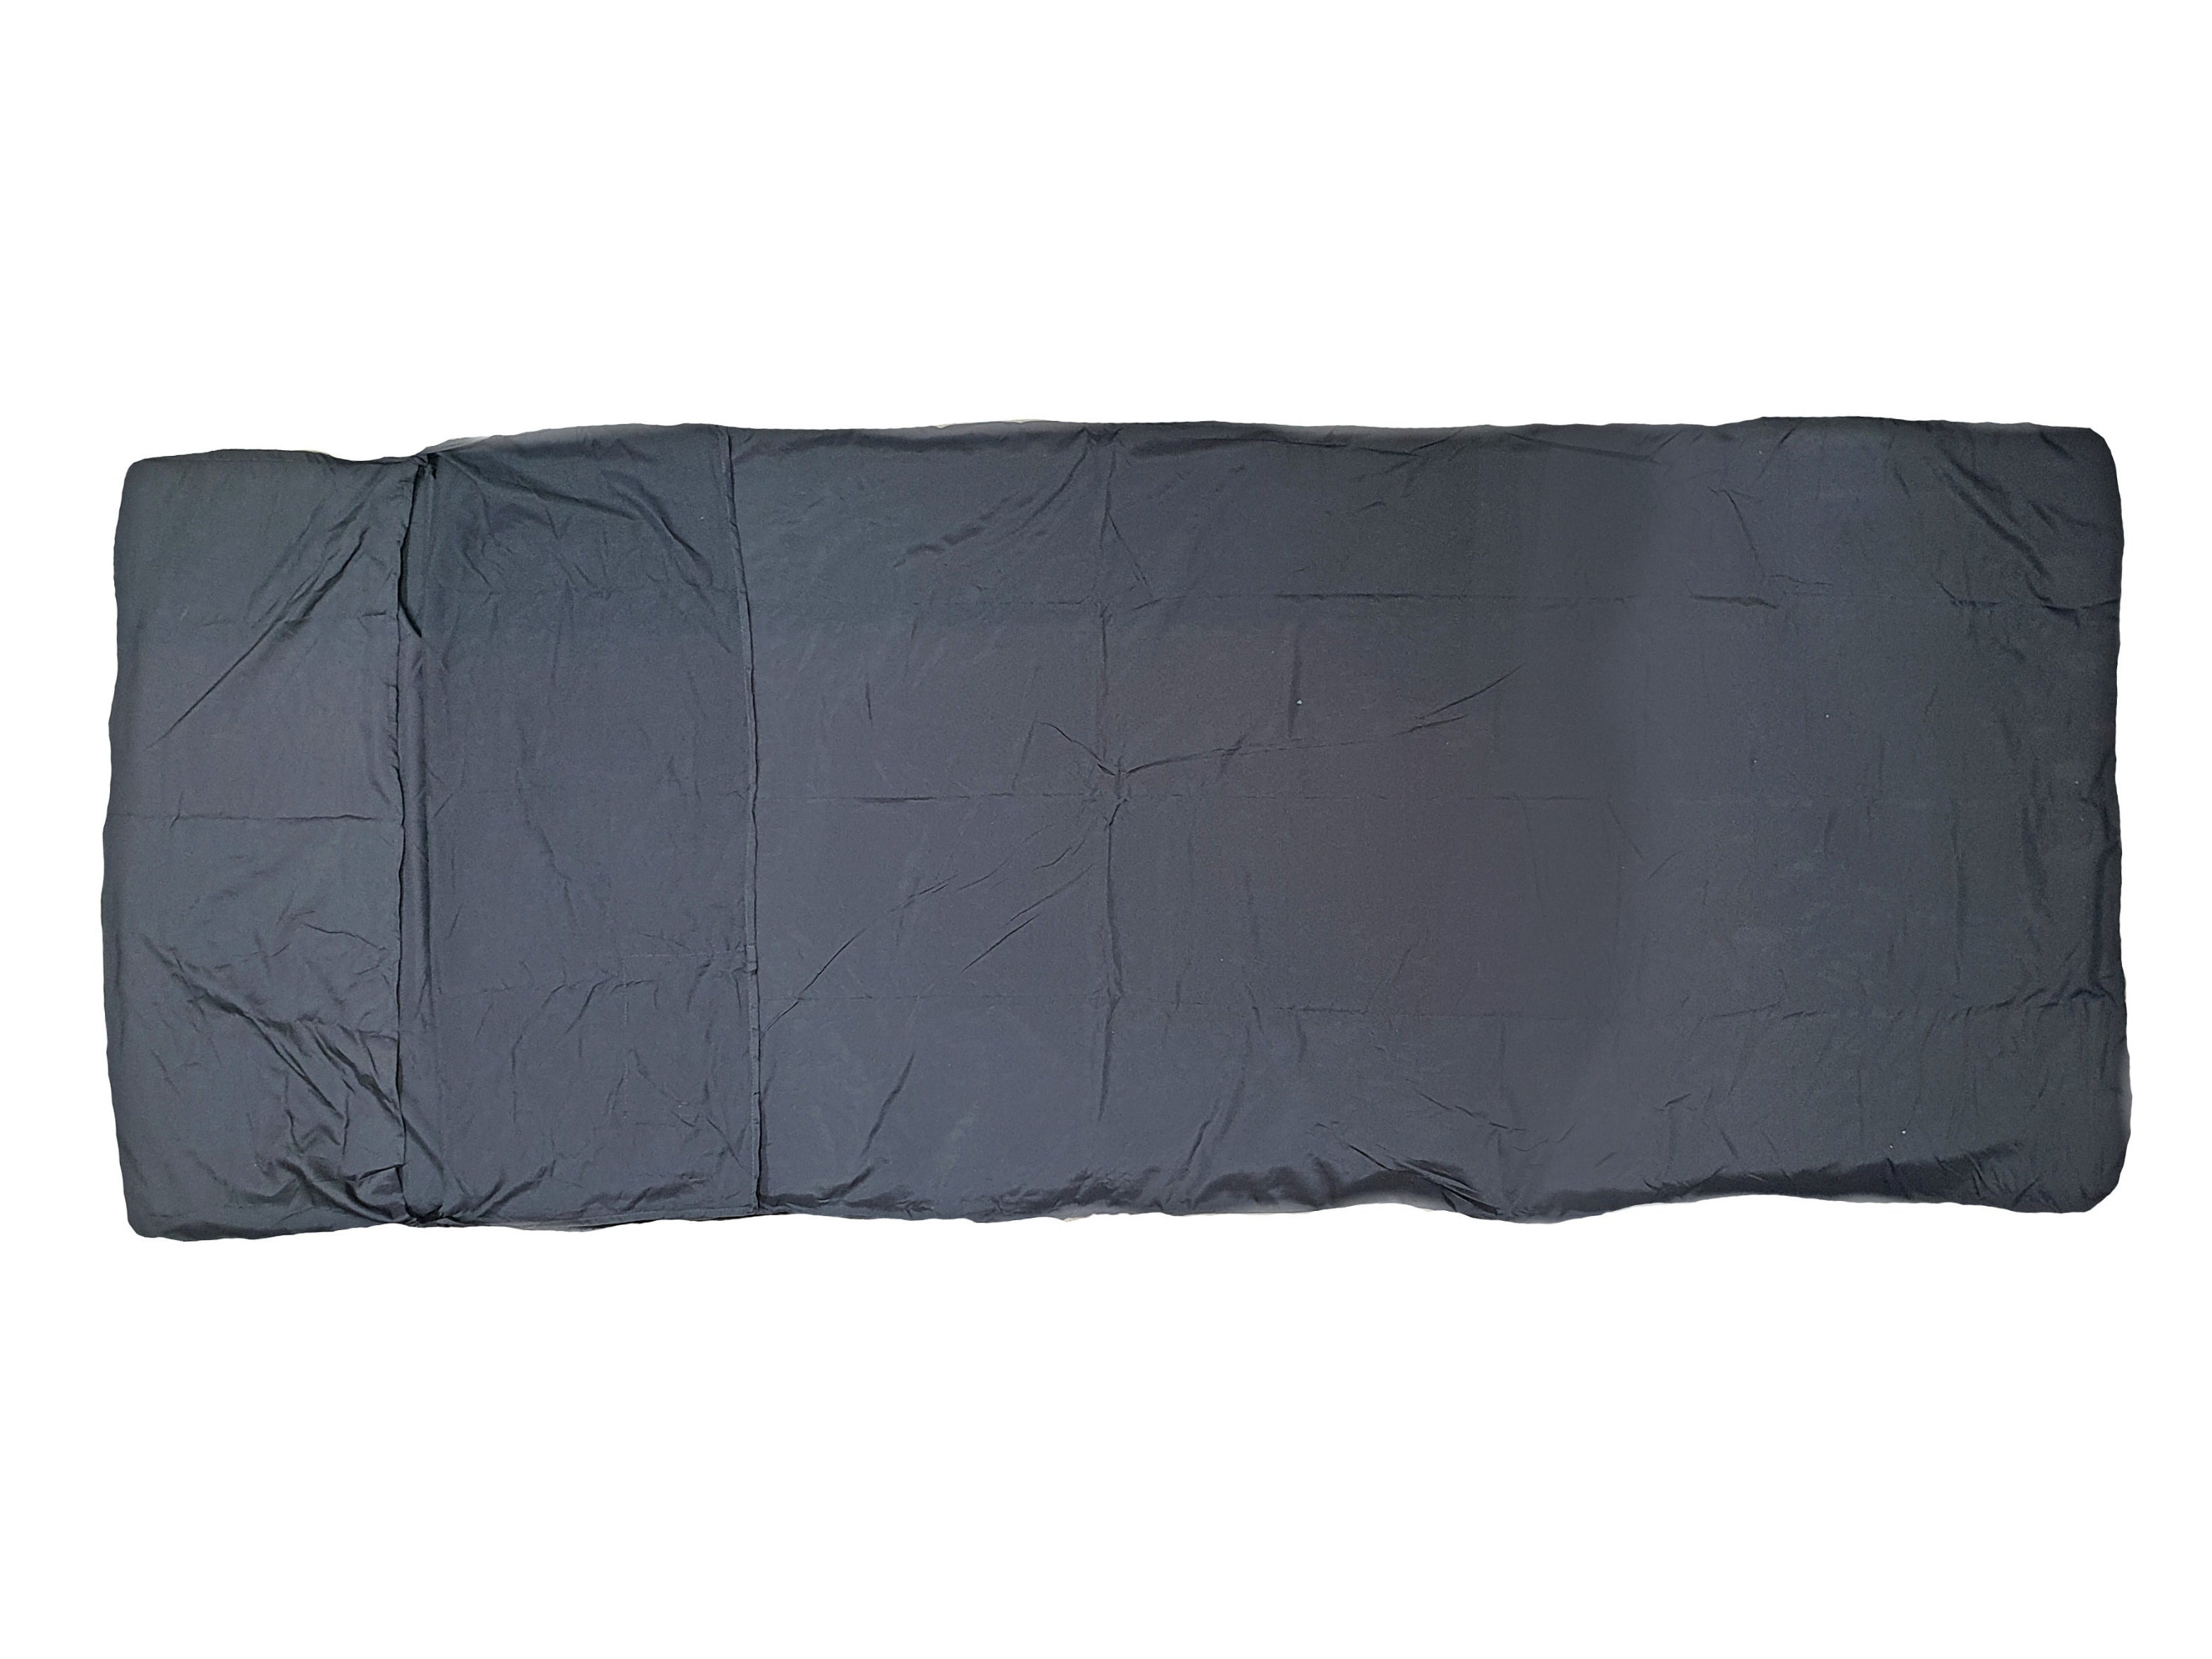 extra-large-comfy-travel-sleepingbag-liner-rolled-out